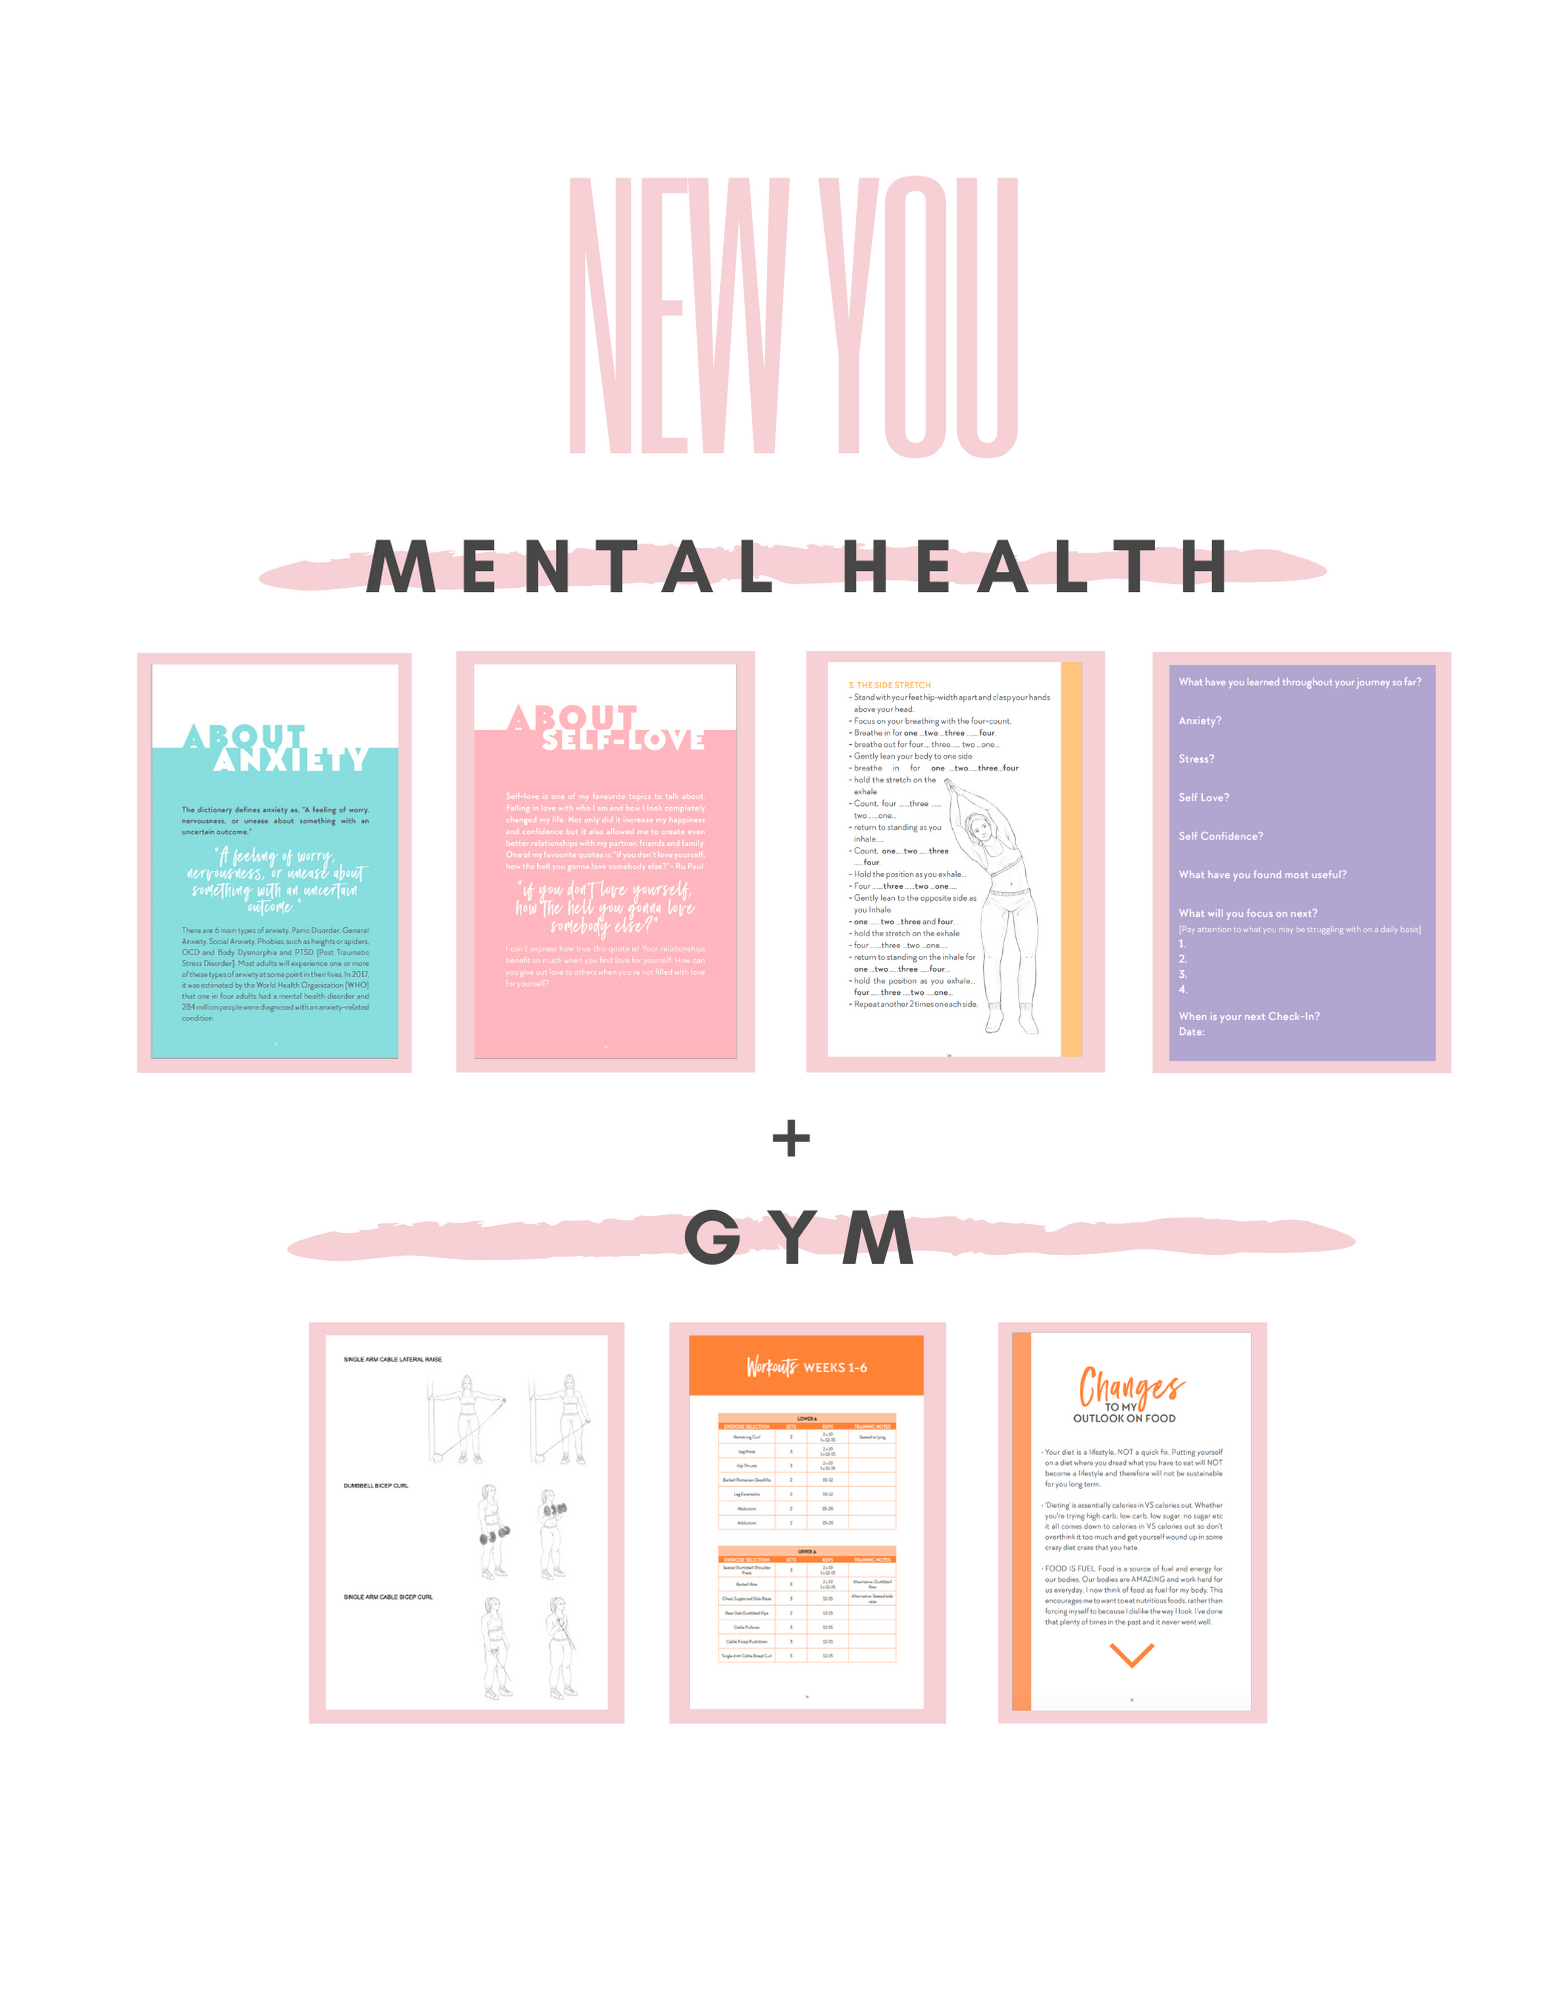 New You: Gym + Mental Health Package